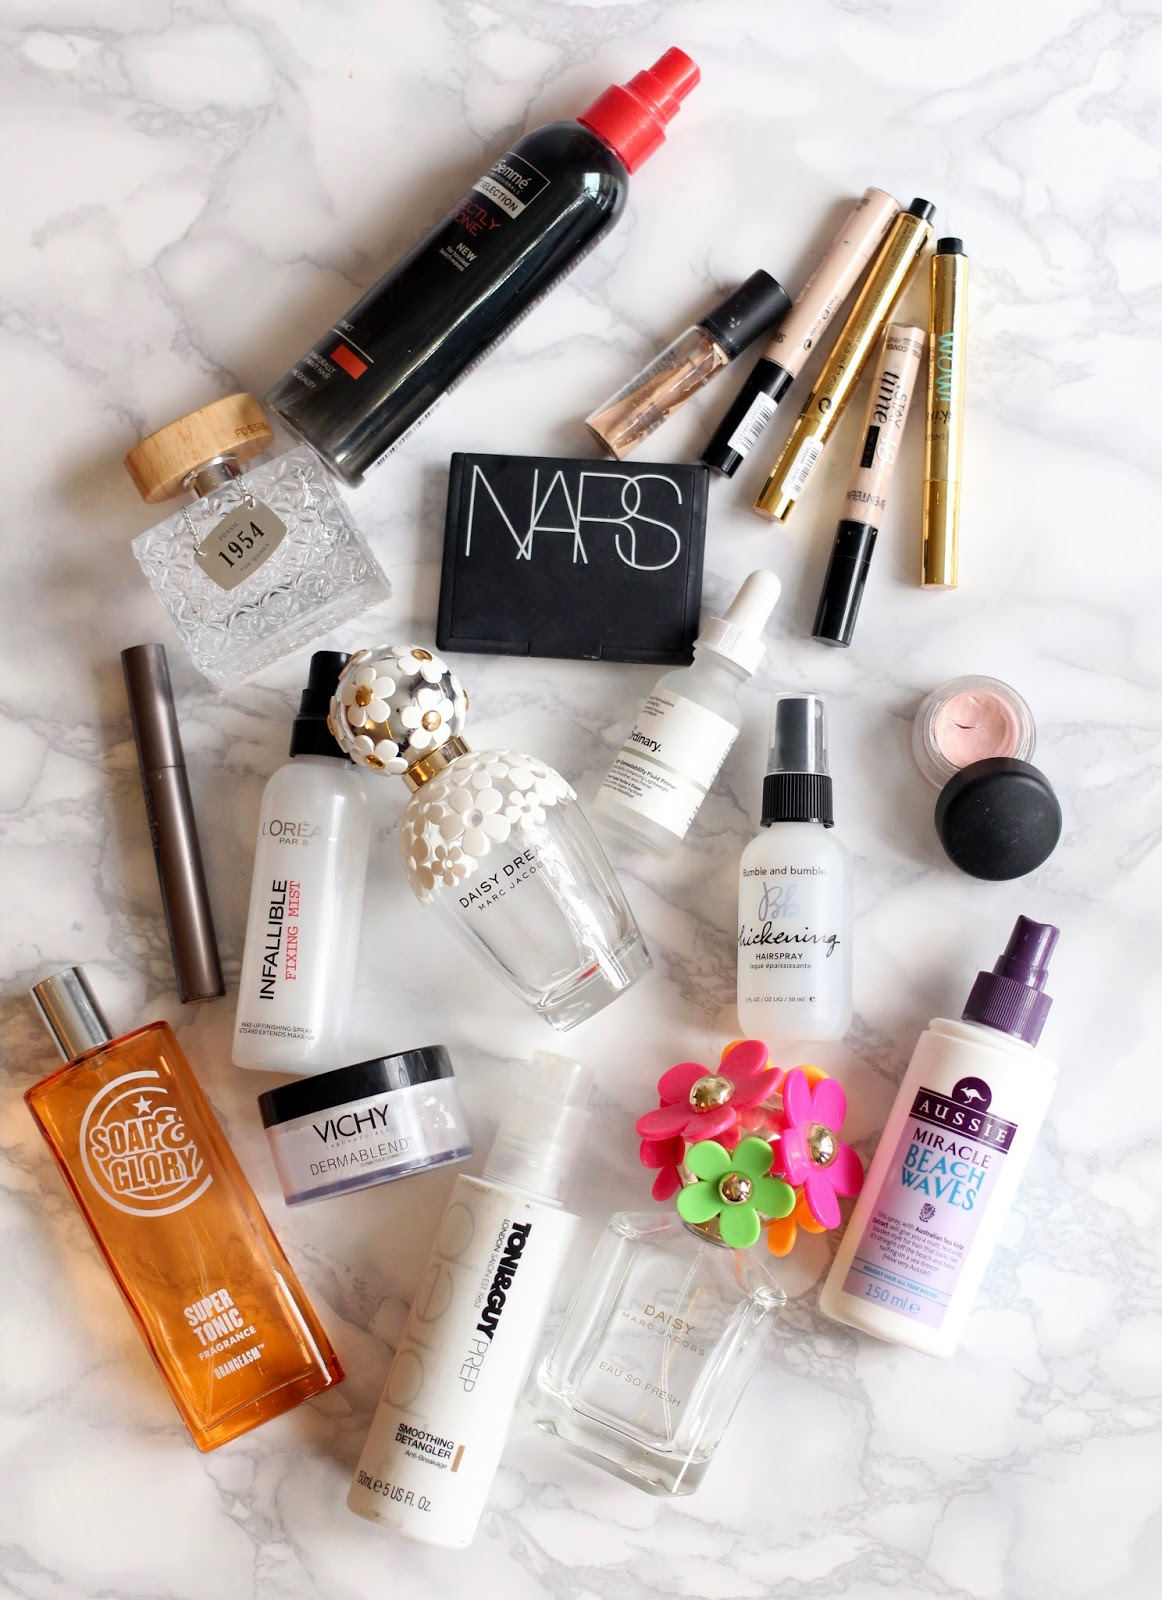 Product Empties – March 2018